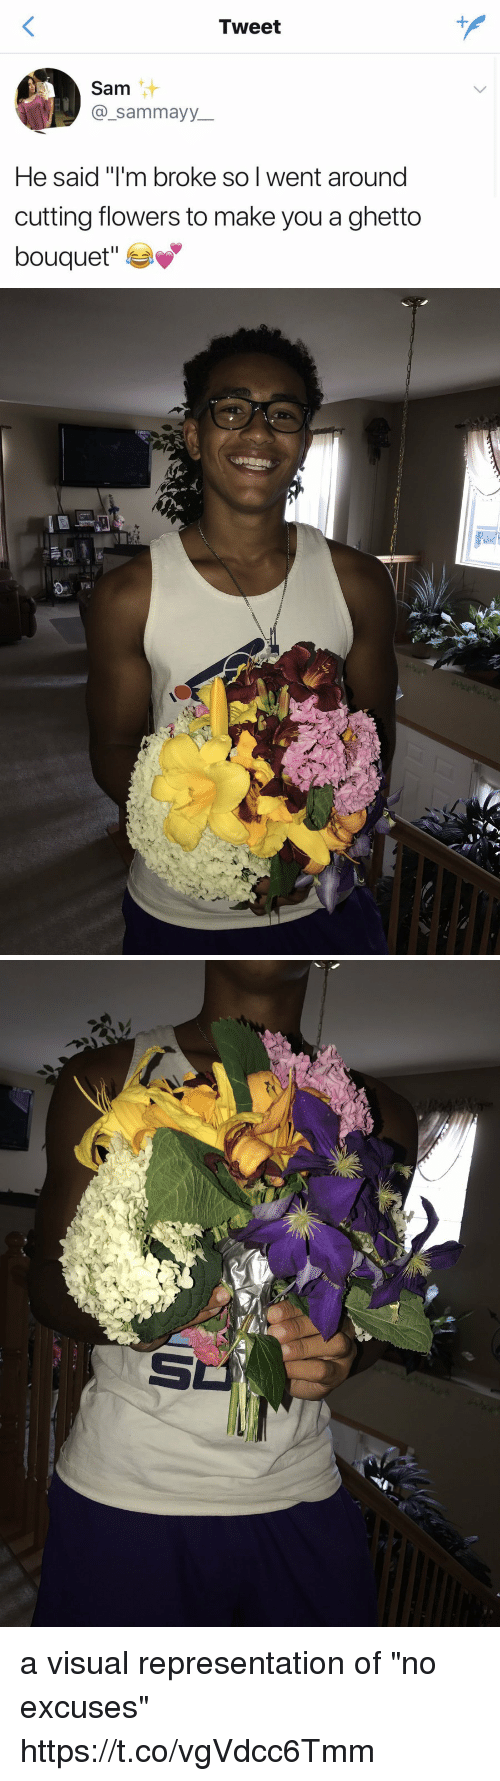 "visualizer: Tweet  Sam  _sammayy  He said ""I'm broke so I went around  cutting flowers to make you a ghetto  bouquet"" a visual representation of ""no excuses"" https://t.co/vgVdcc6Tmm"